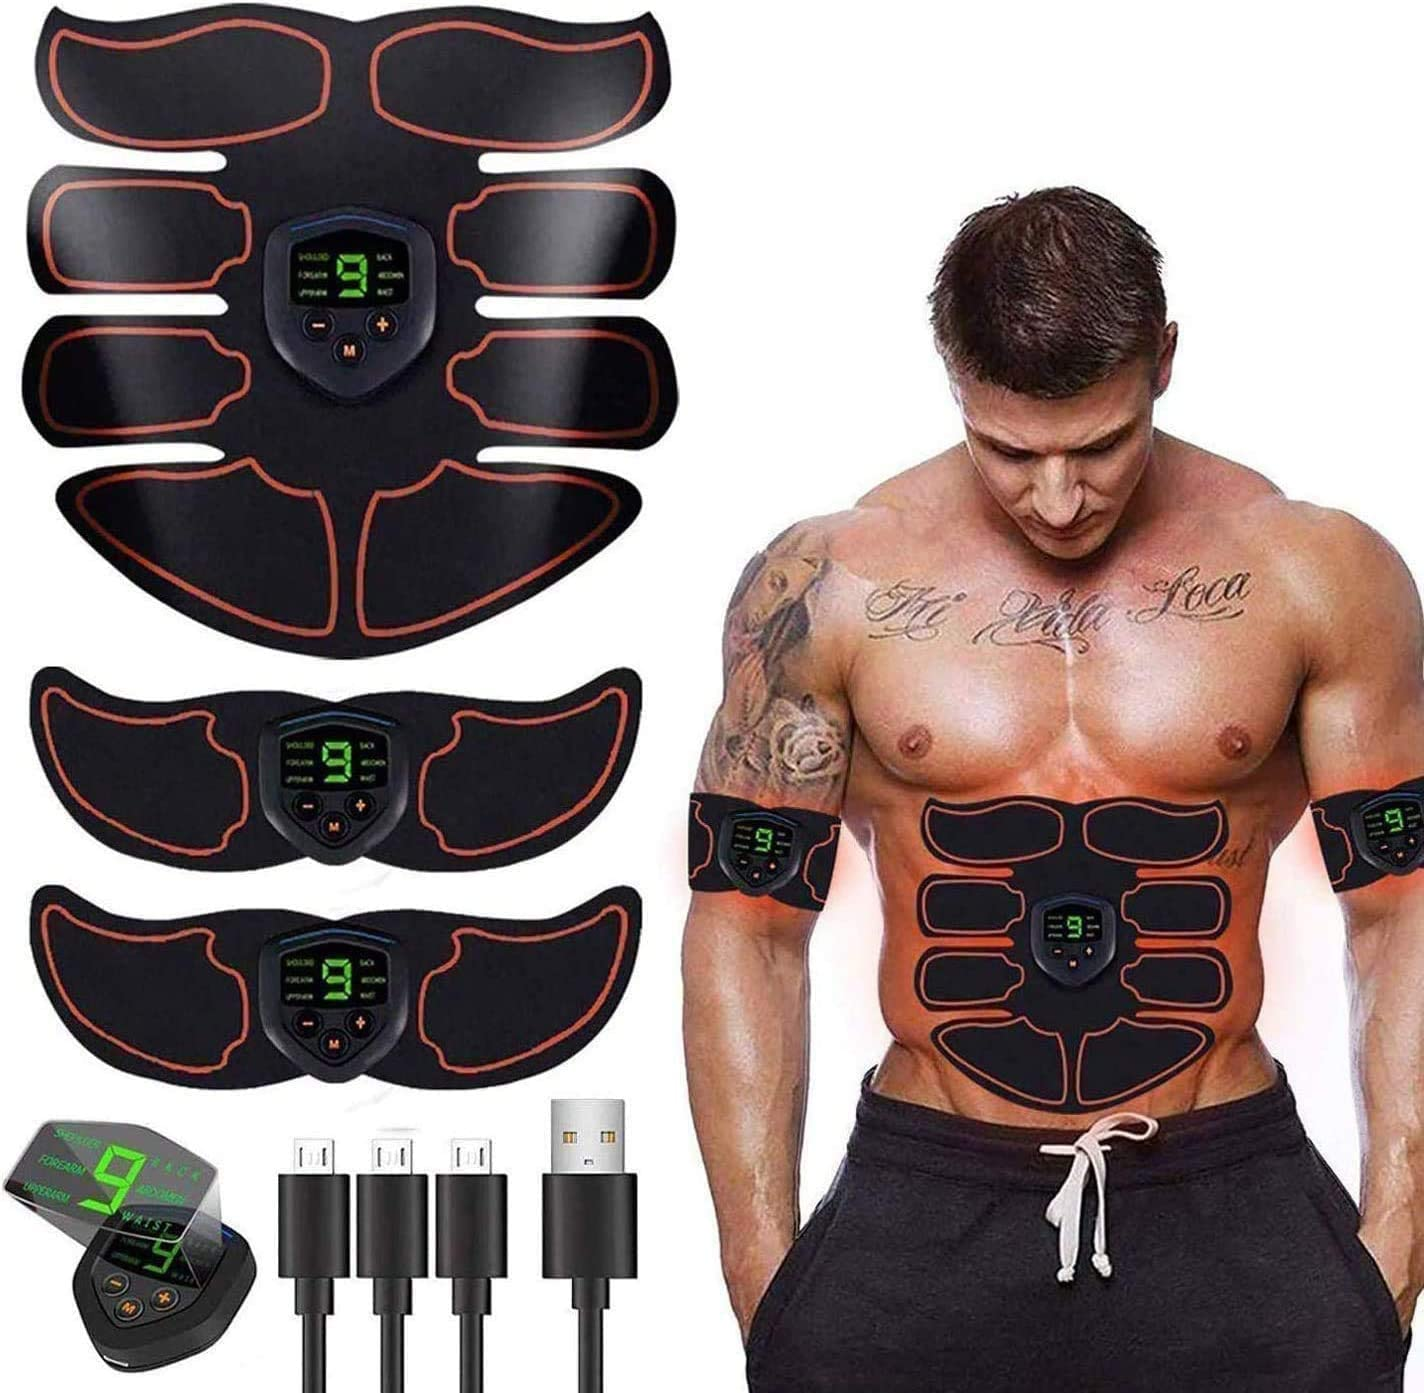 Ben Belle ABS Stimulator Ab Machine,Ab Stimulator EMS Portable Rechargeable Gym Abs Workout Equipment and Home Office Fitness Ab Belt Equipment for Abdomen